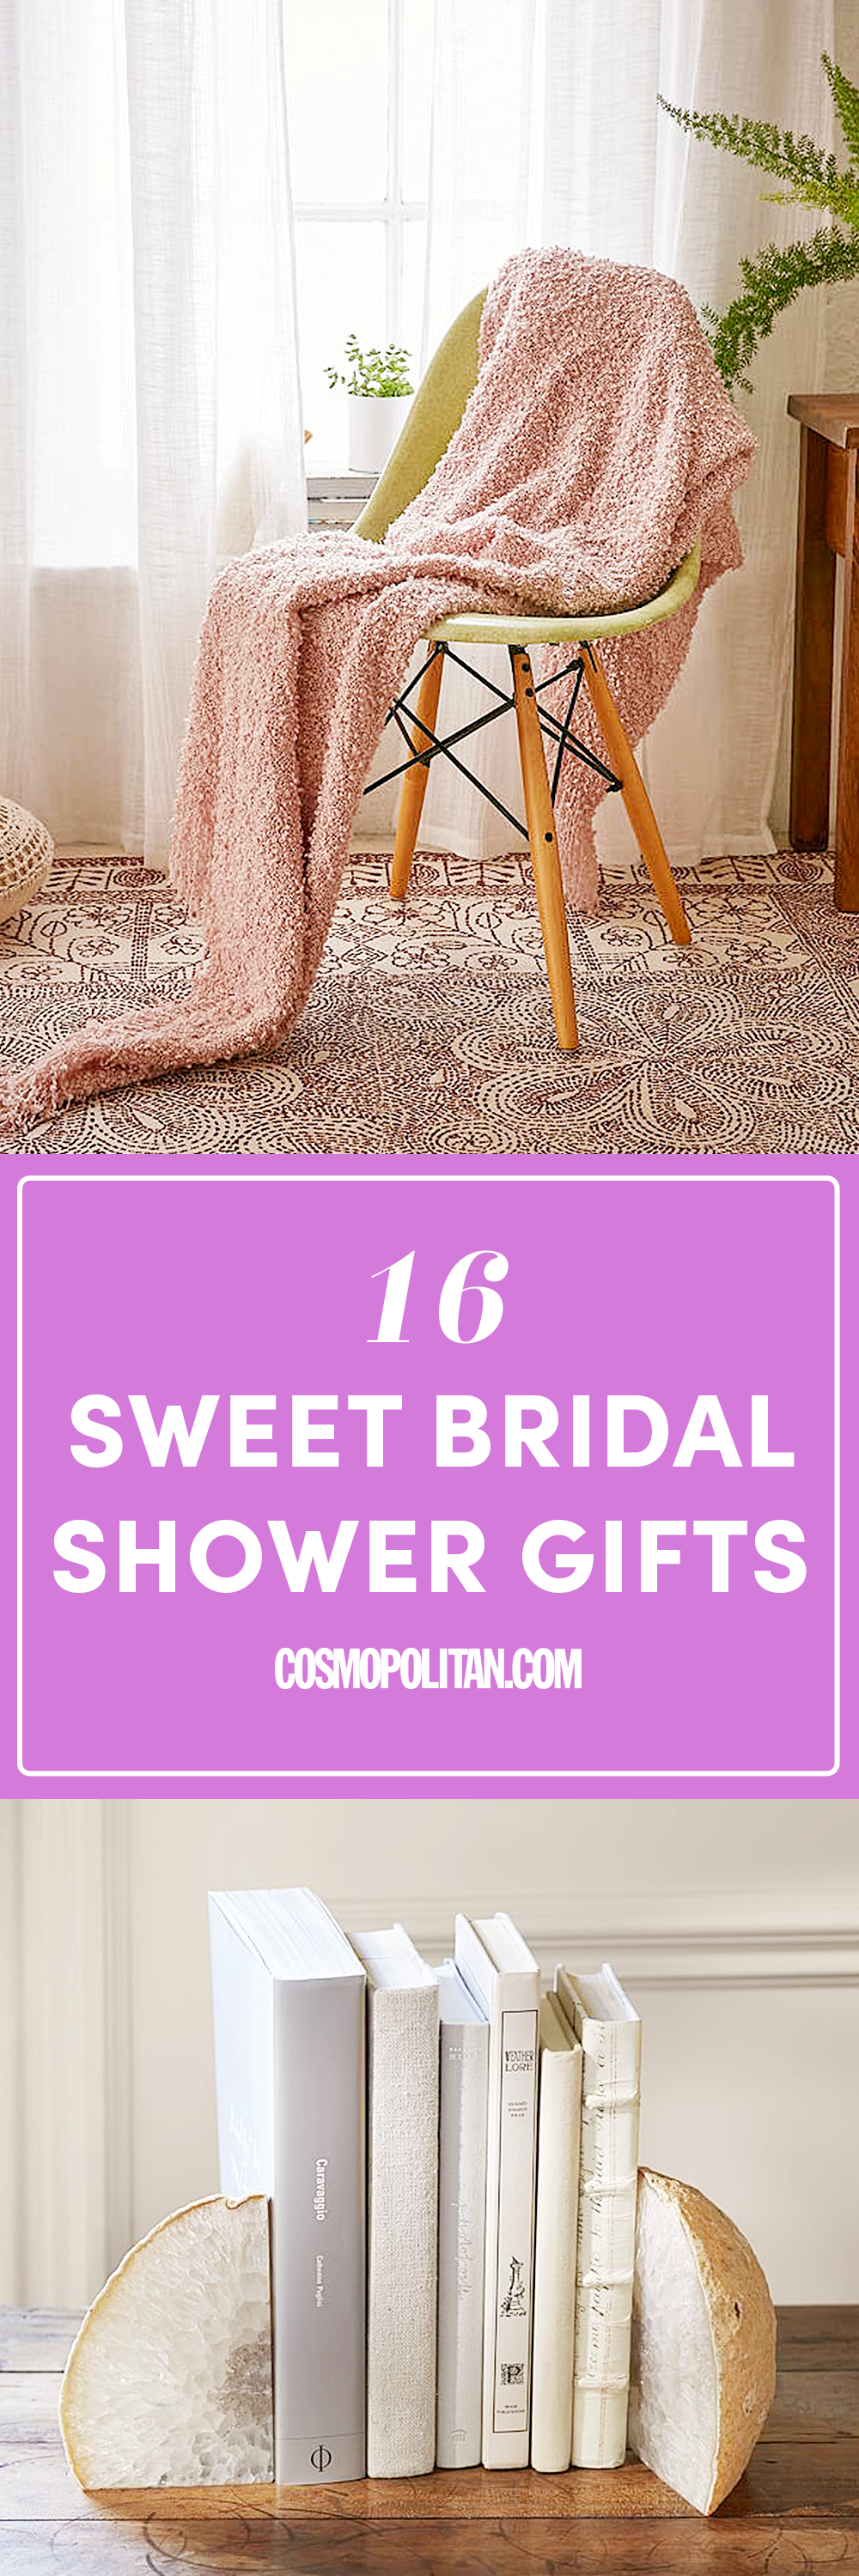 19 bridal shower gift ideas that dont include serving dishes 16 bridal shower gift ideas that dont include serving dishes cosmopolitan negle Images